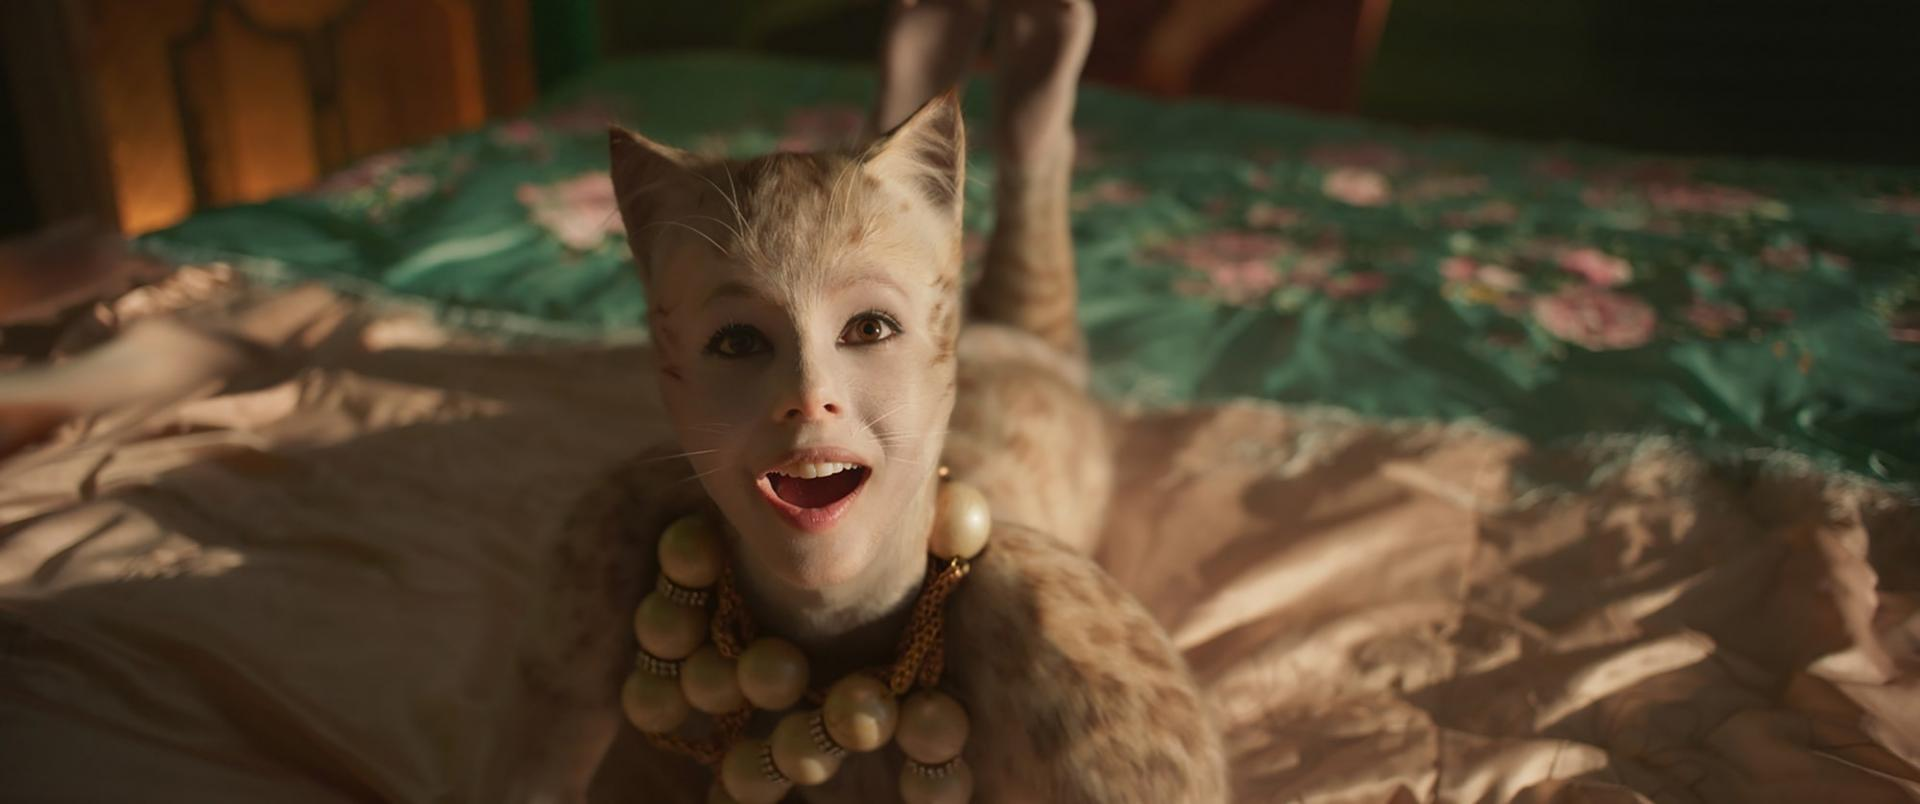 Cats (2019) - Financial Information